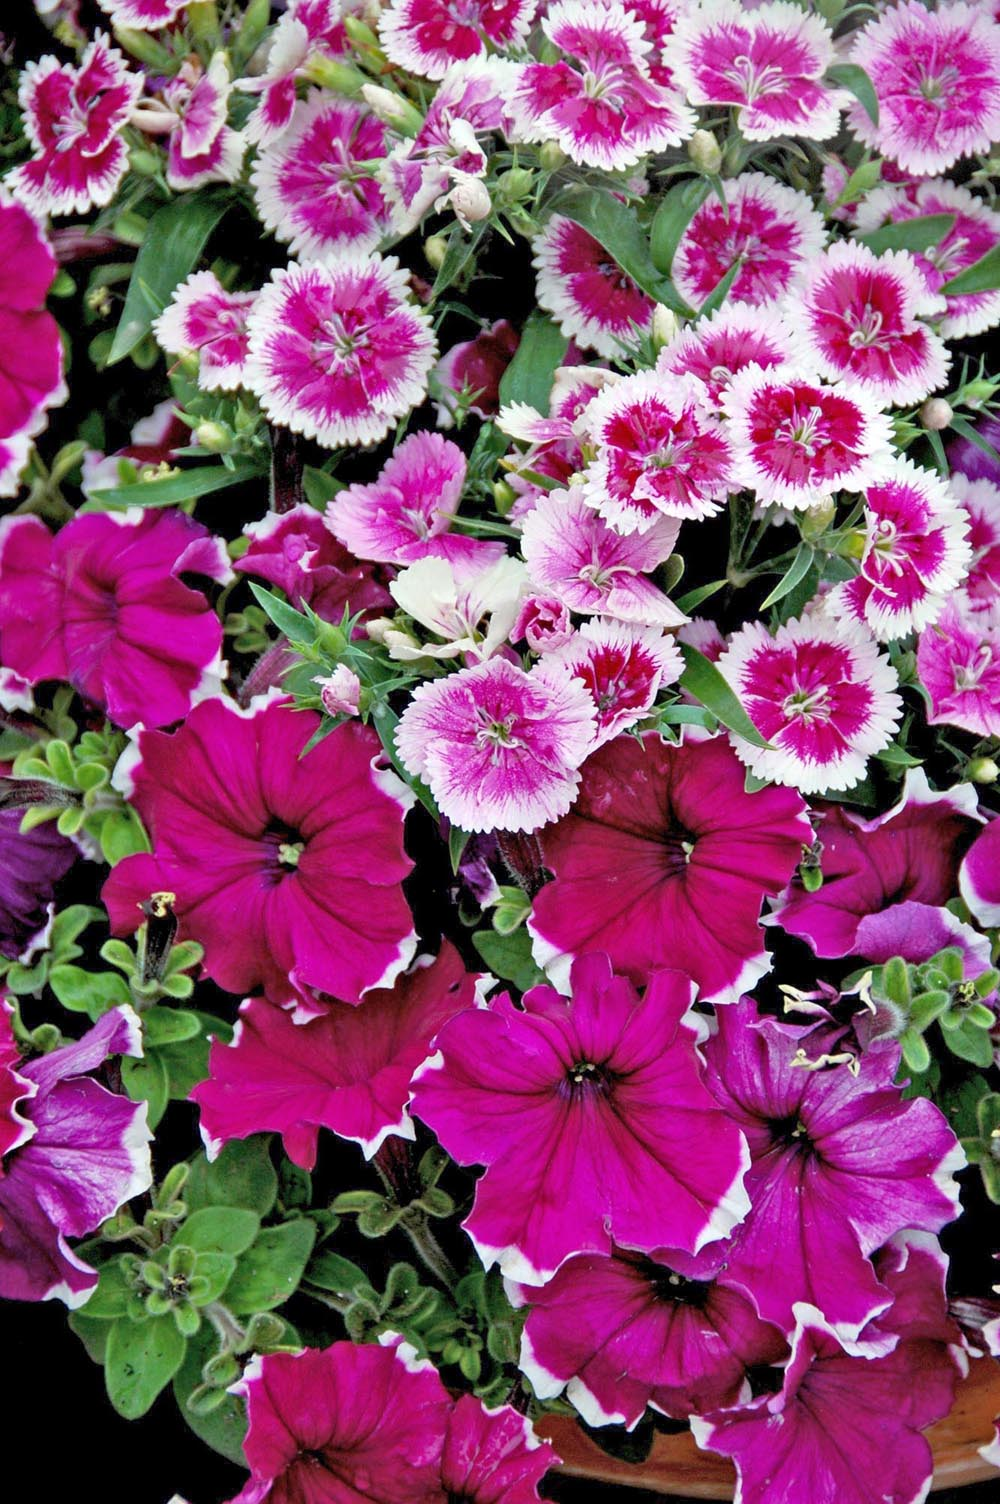 Dianthus offers great cool season options mississippi state telstar purple picotee dianthus and symphony burgundy picotee petunia compose a beautiful monochromatic spring garden izmirmasajfo